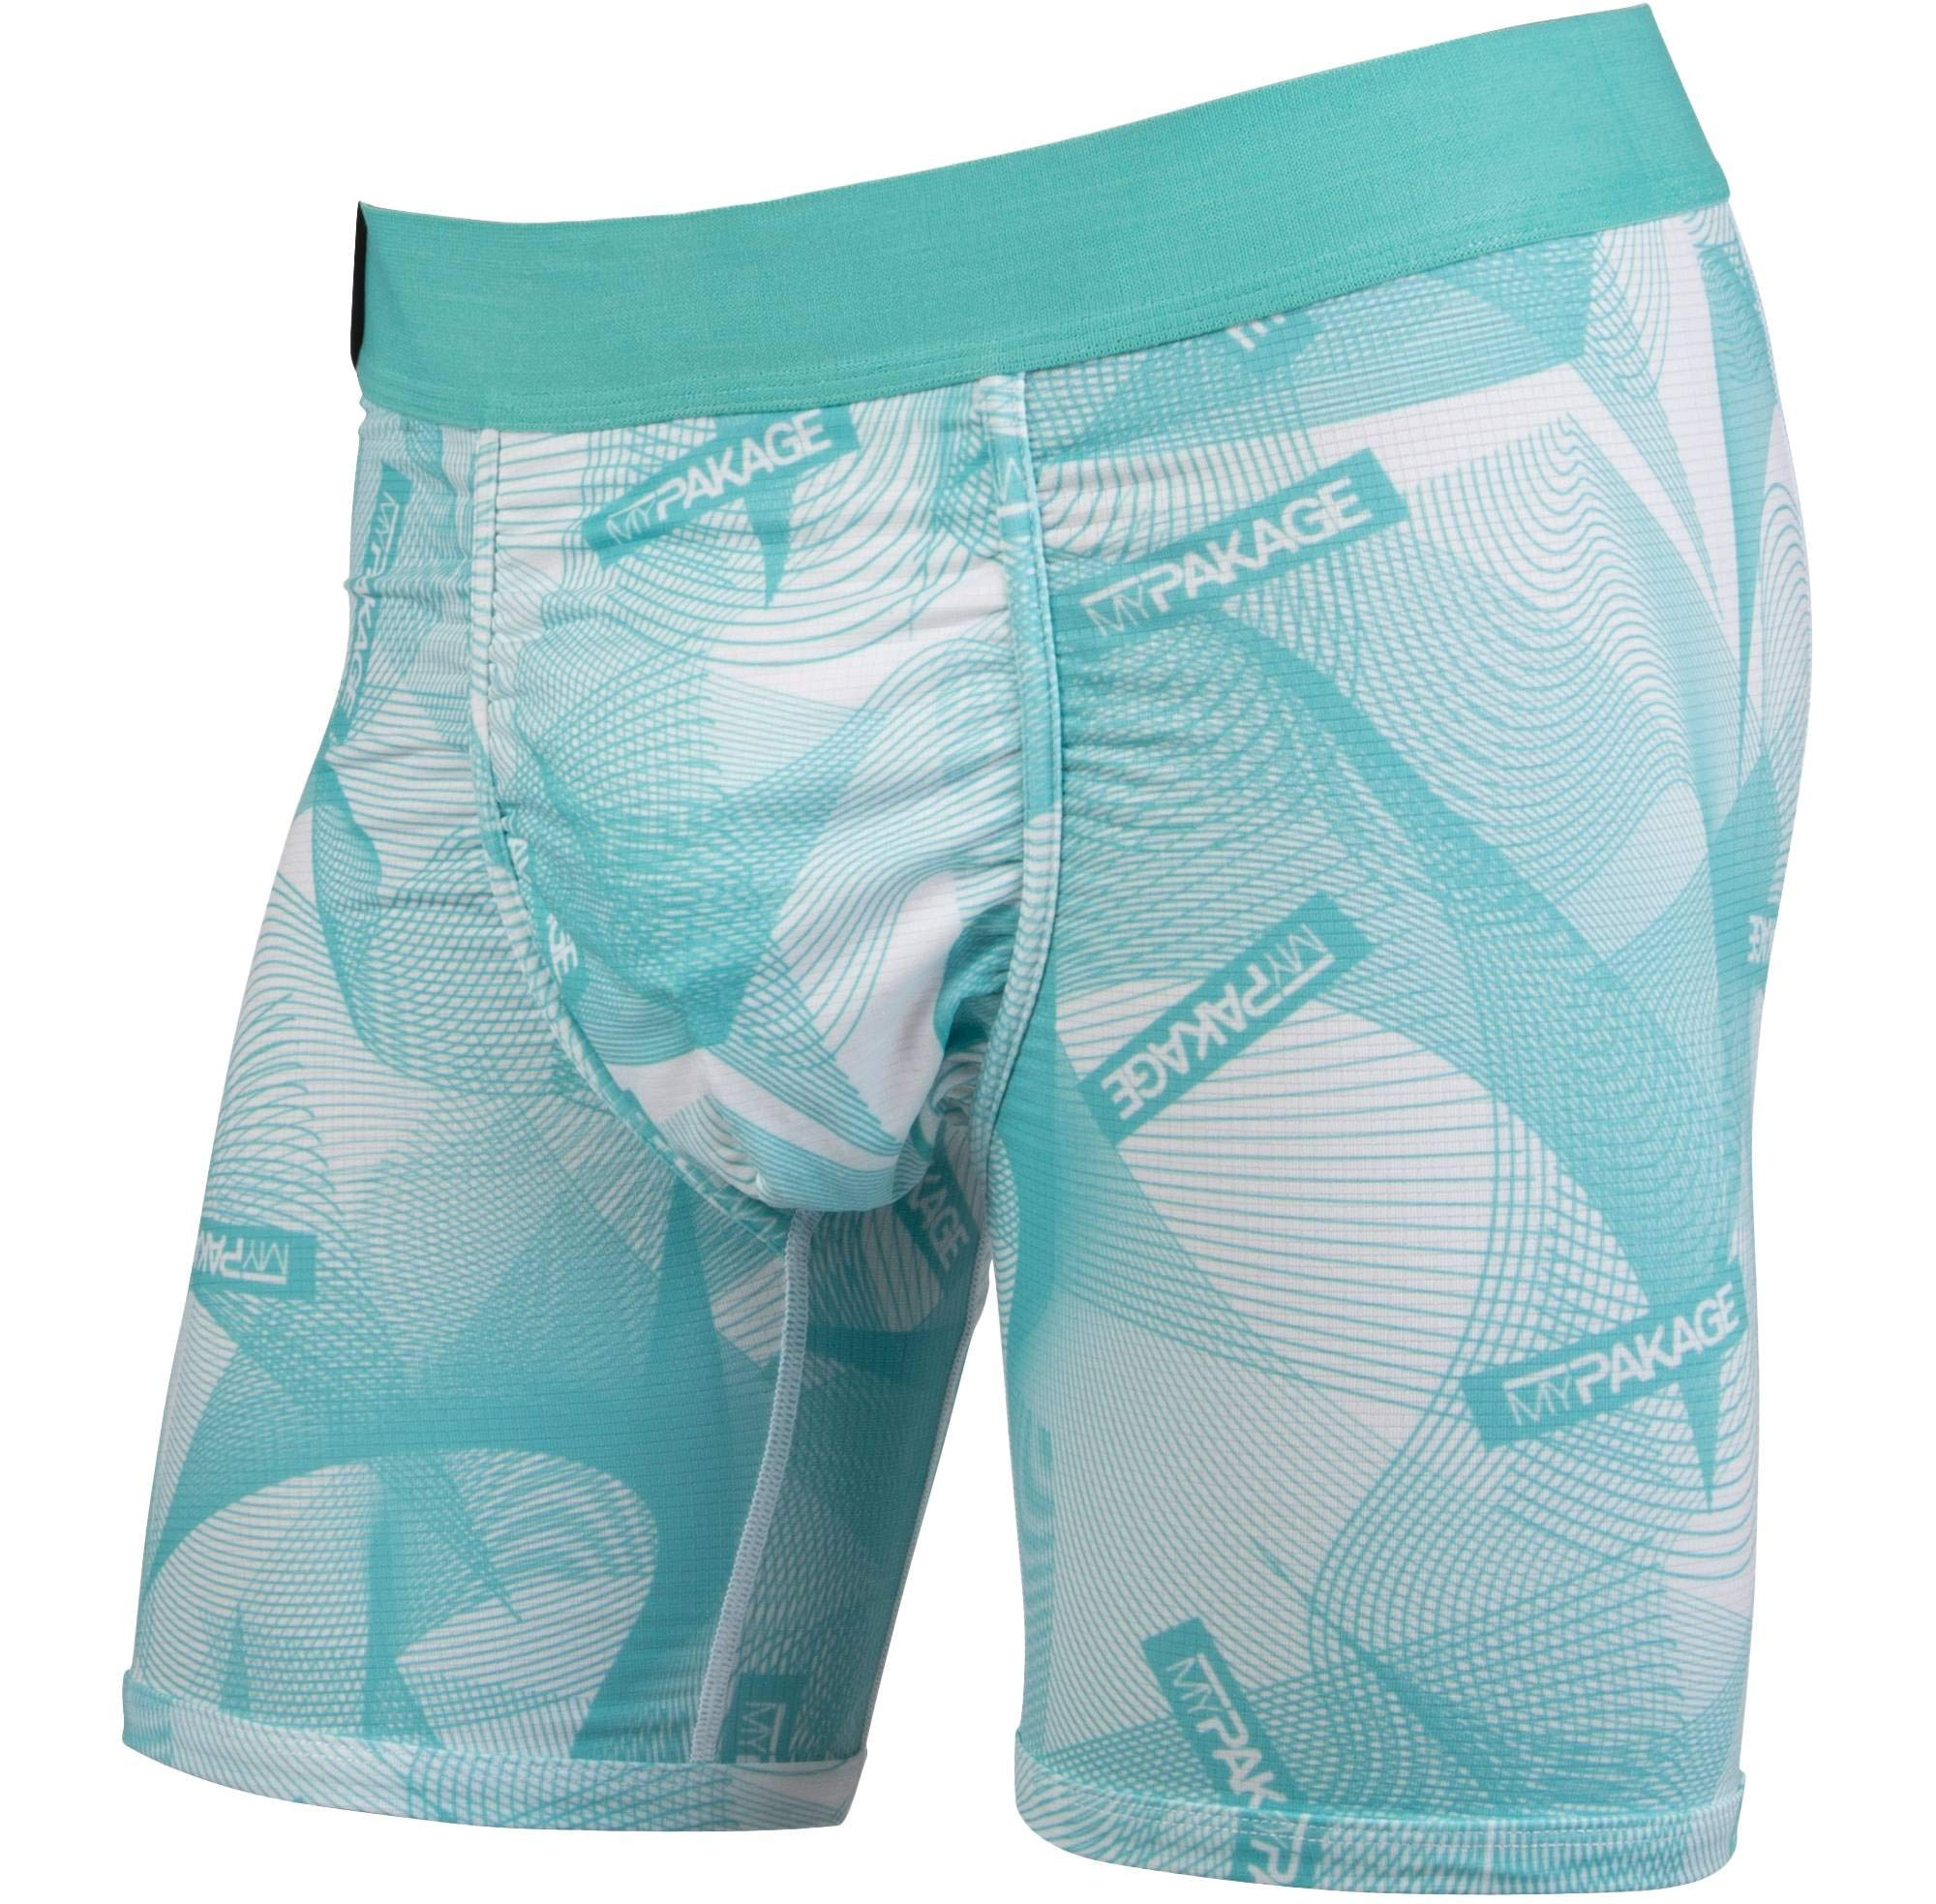 MyPakage Action Boxer Brief by MYPAKAGE